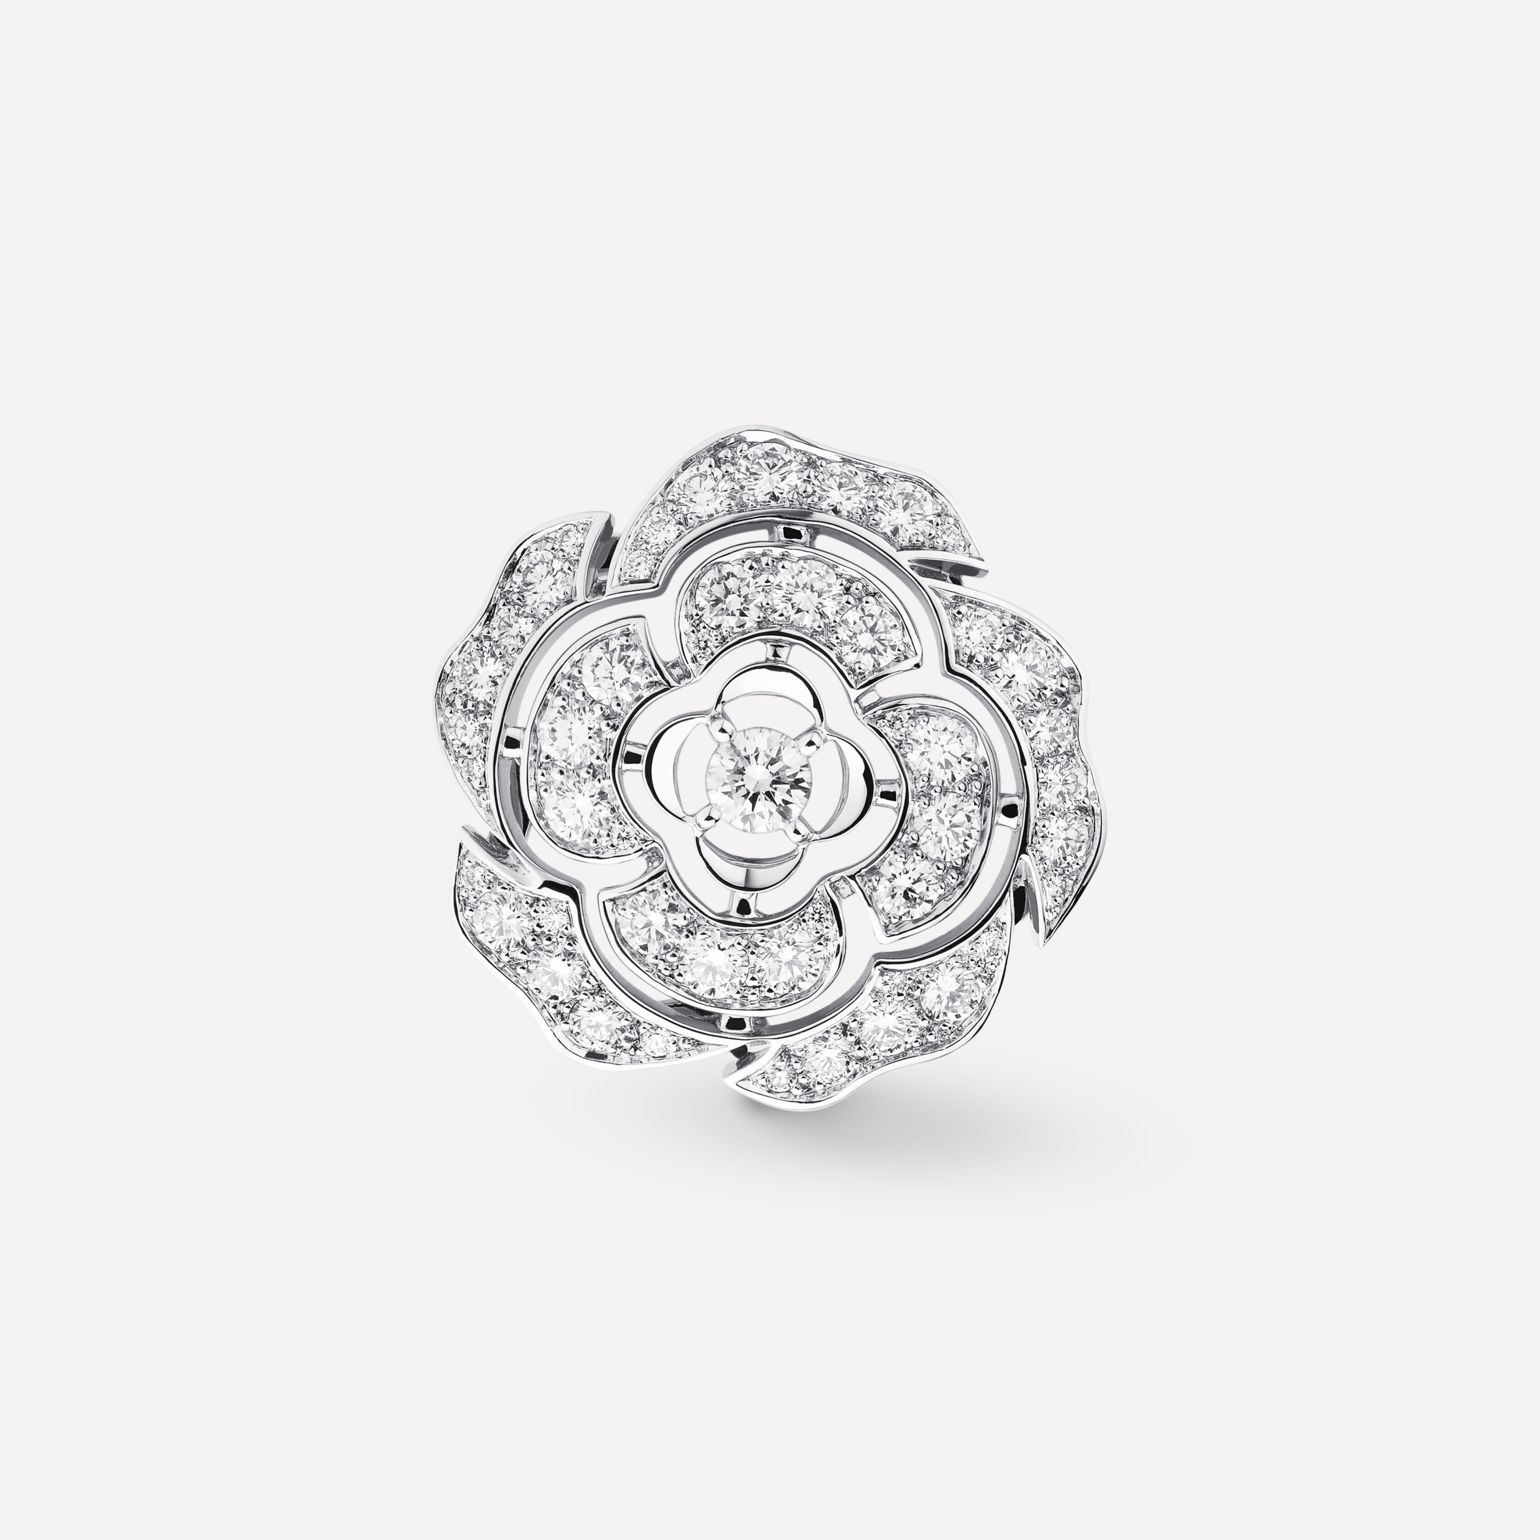 ced0f7b8c59a30 Camélia Ring - Camellia bud motif in 18K white gold and diamonds with one  center diamond J11182 at the CHANEL Fine Jewelry website.